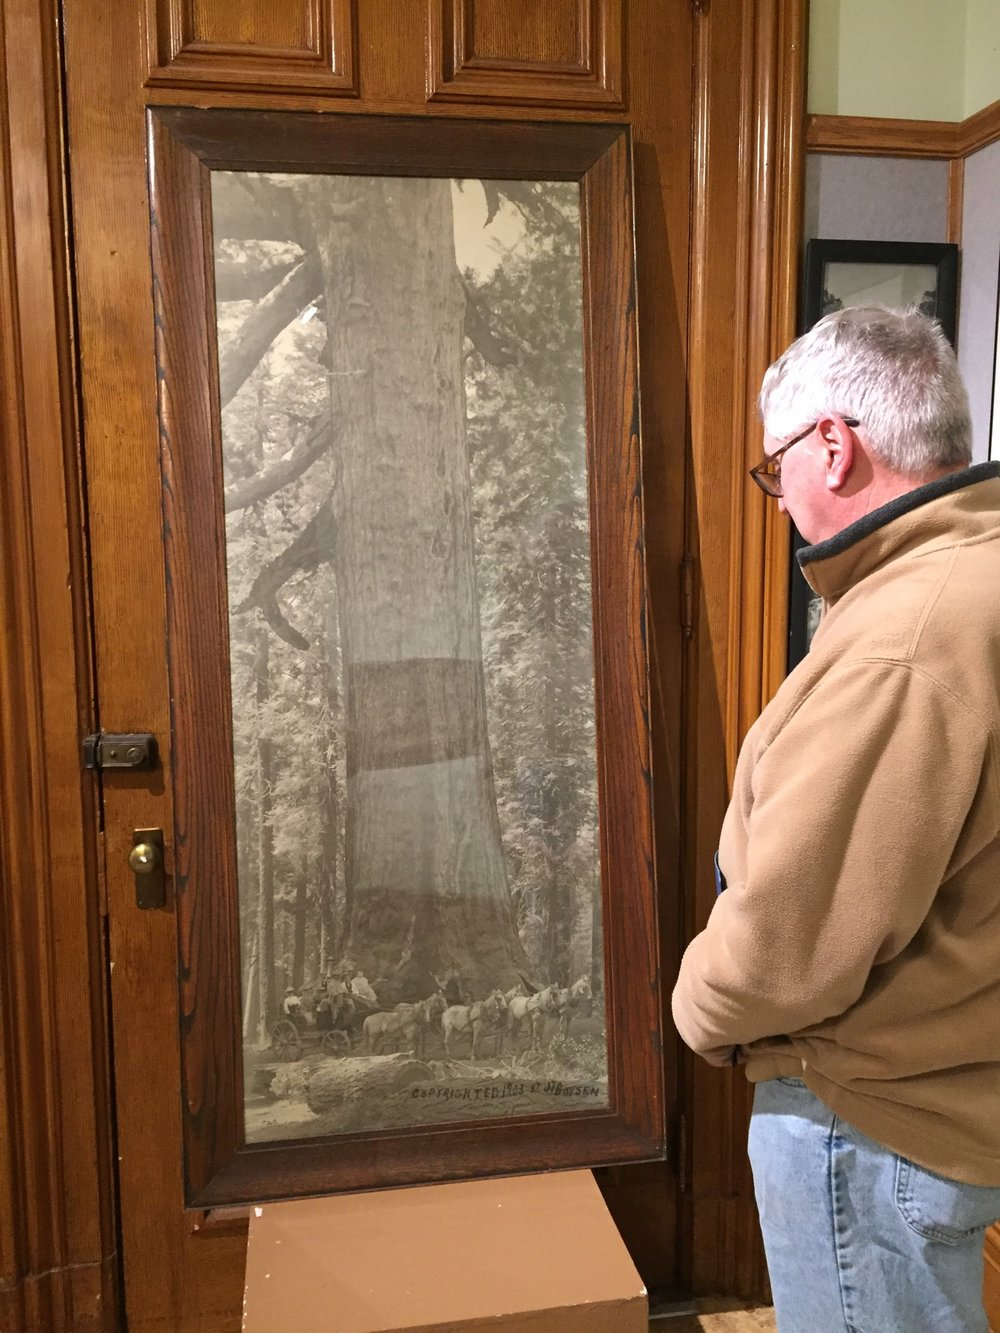 Steve Newvine views a large framed photograph from Yosemite at the Courthouse Museum Exhibit The Originals of Yosemite. Photo: Donna Lee Hartman.